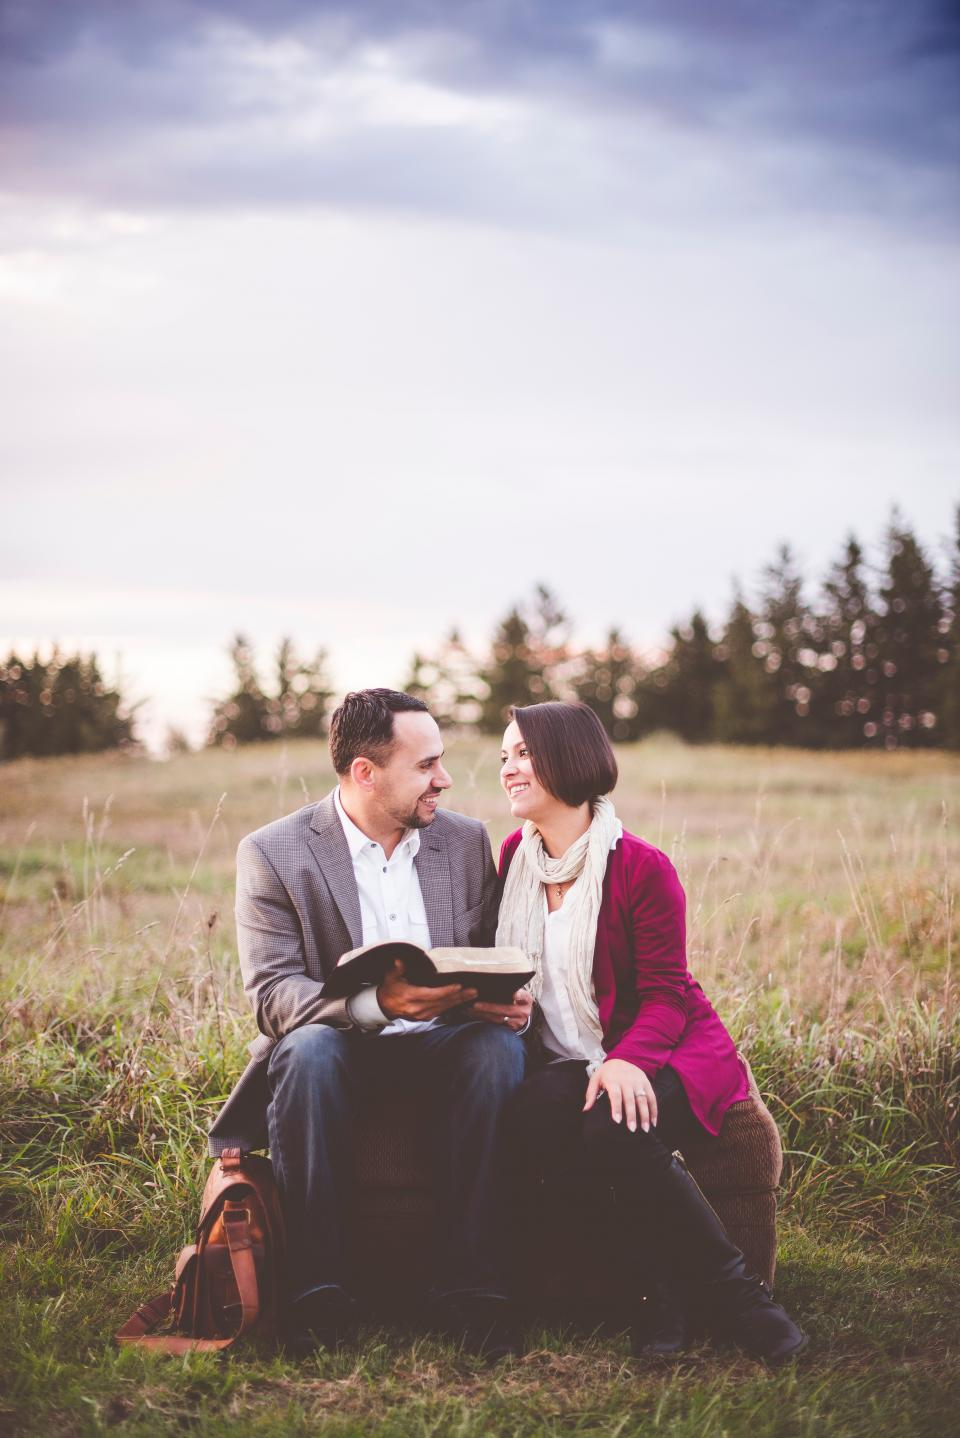 people couple man woman smile happy sitting green grass book bible reading outdoor trees plants sky clouds